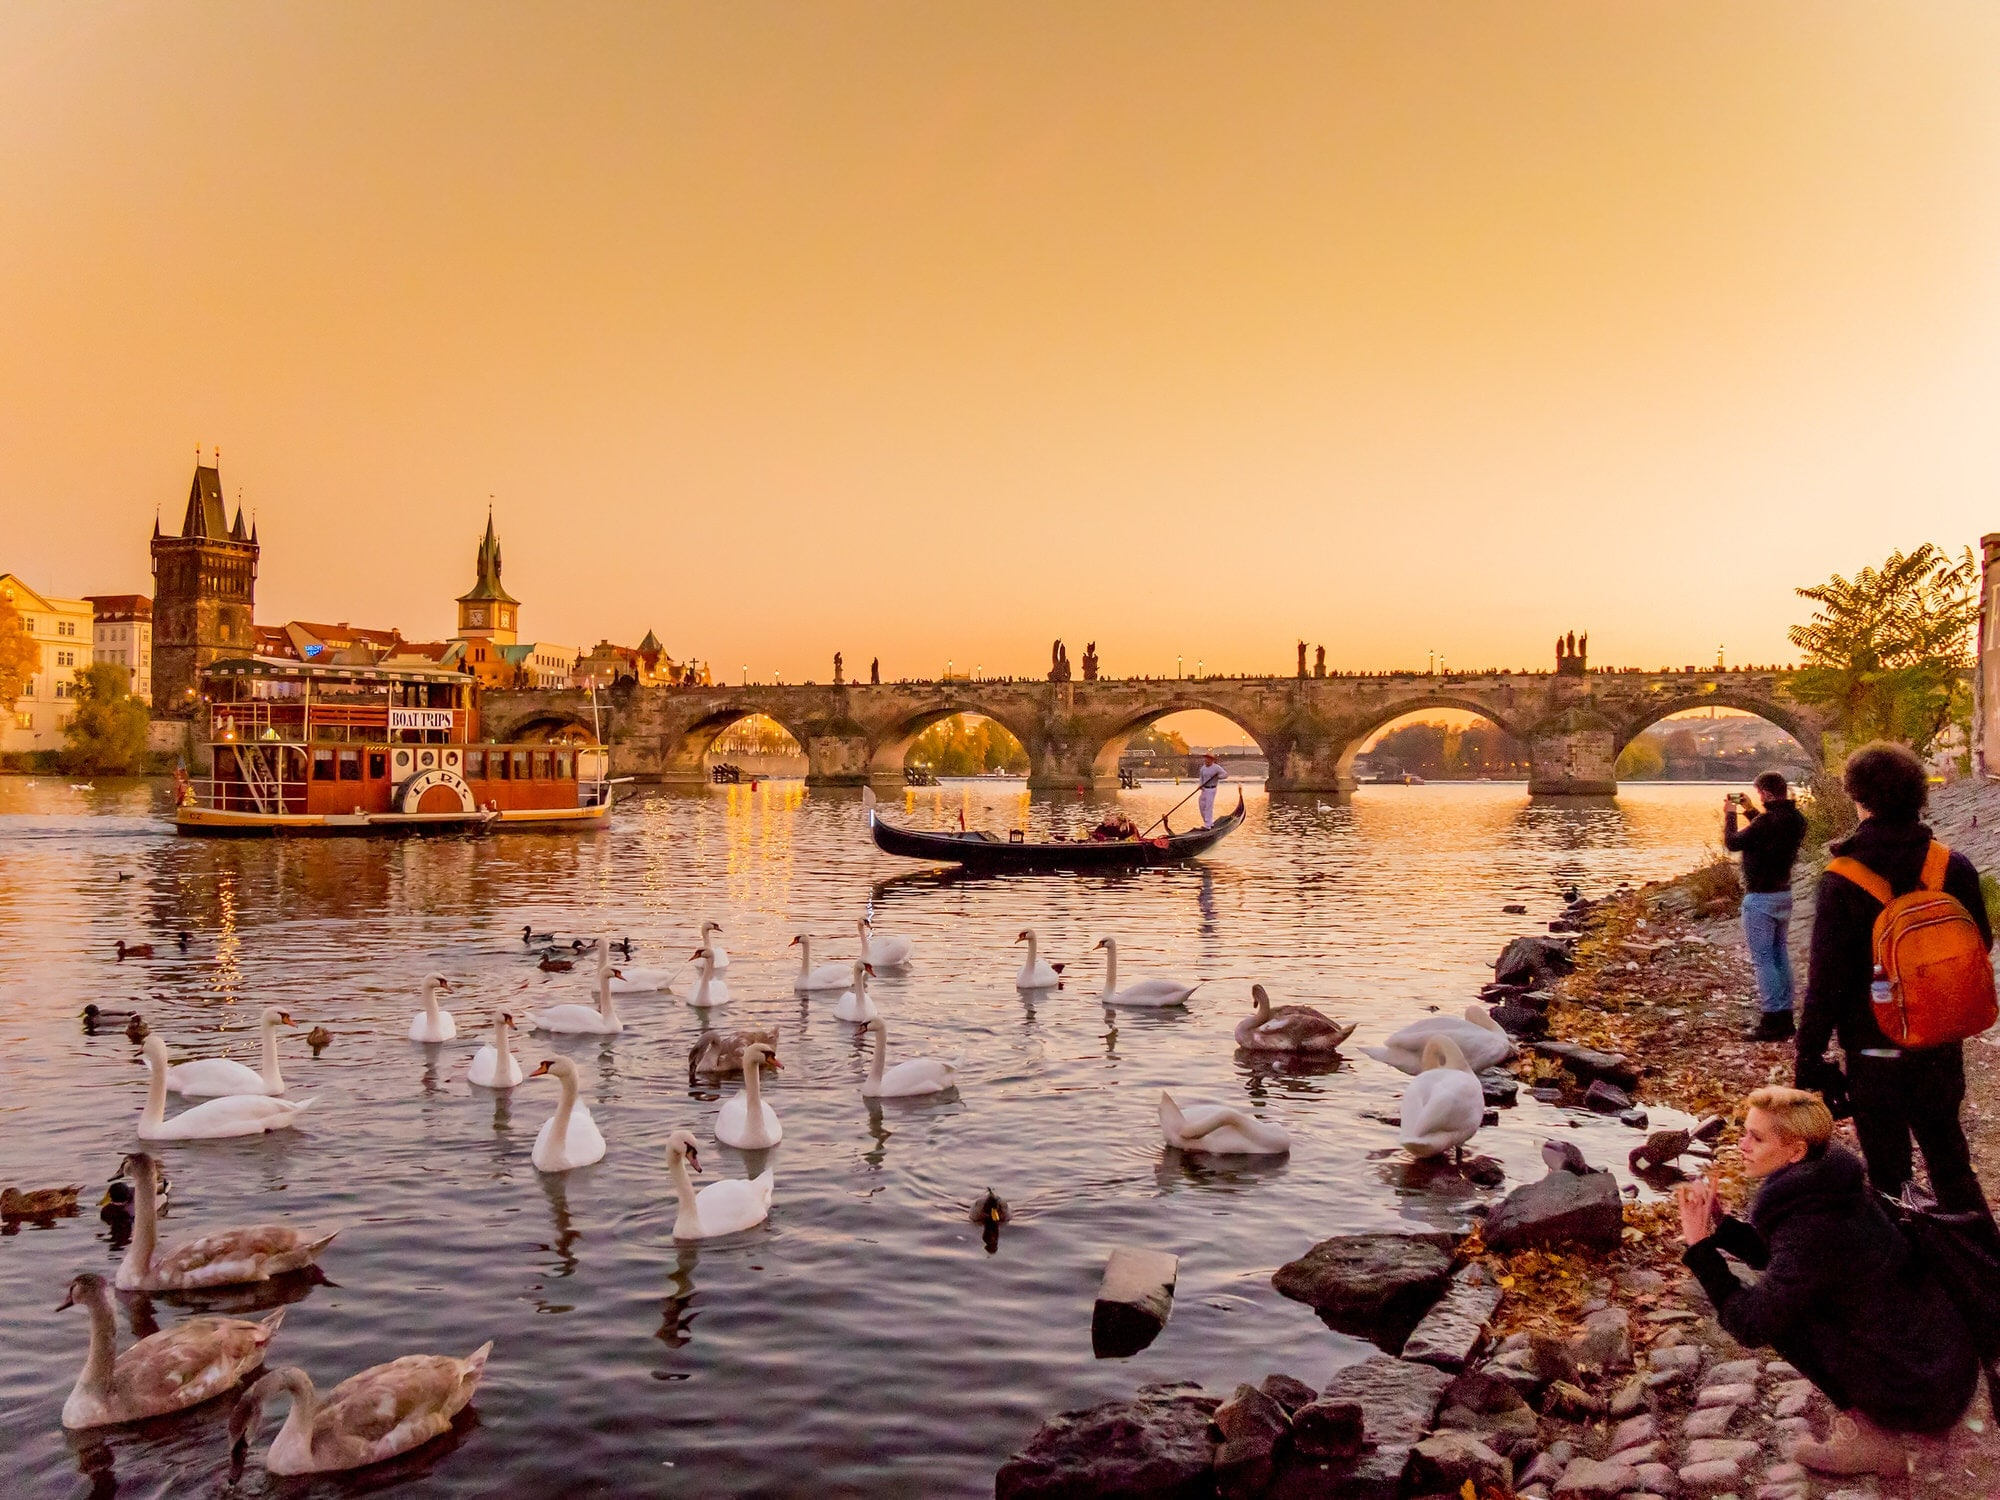 Sunset at the Charles Bridge in Prague, with swans swimming in the river